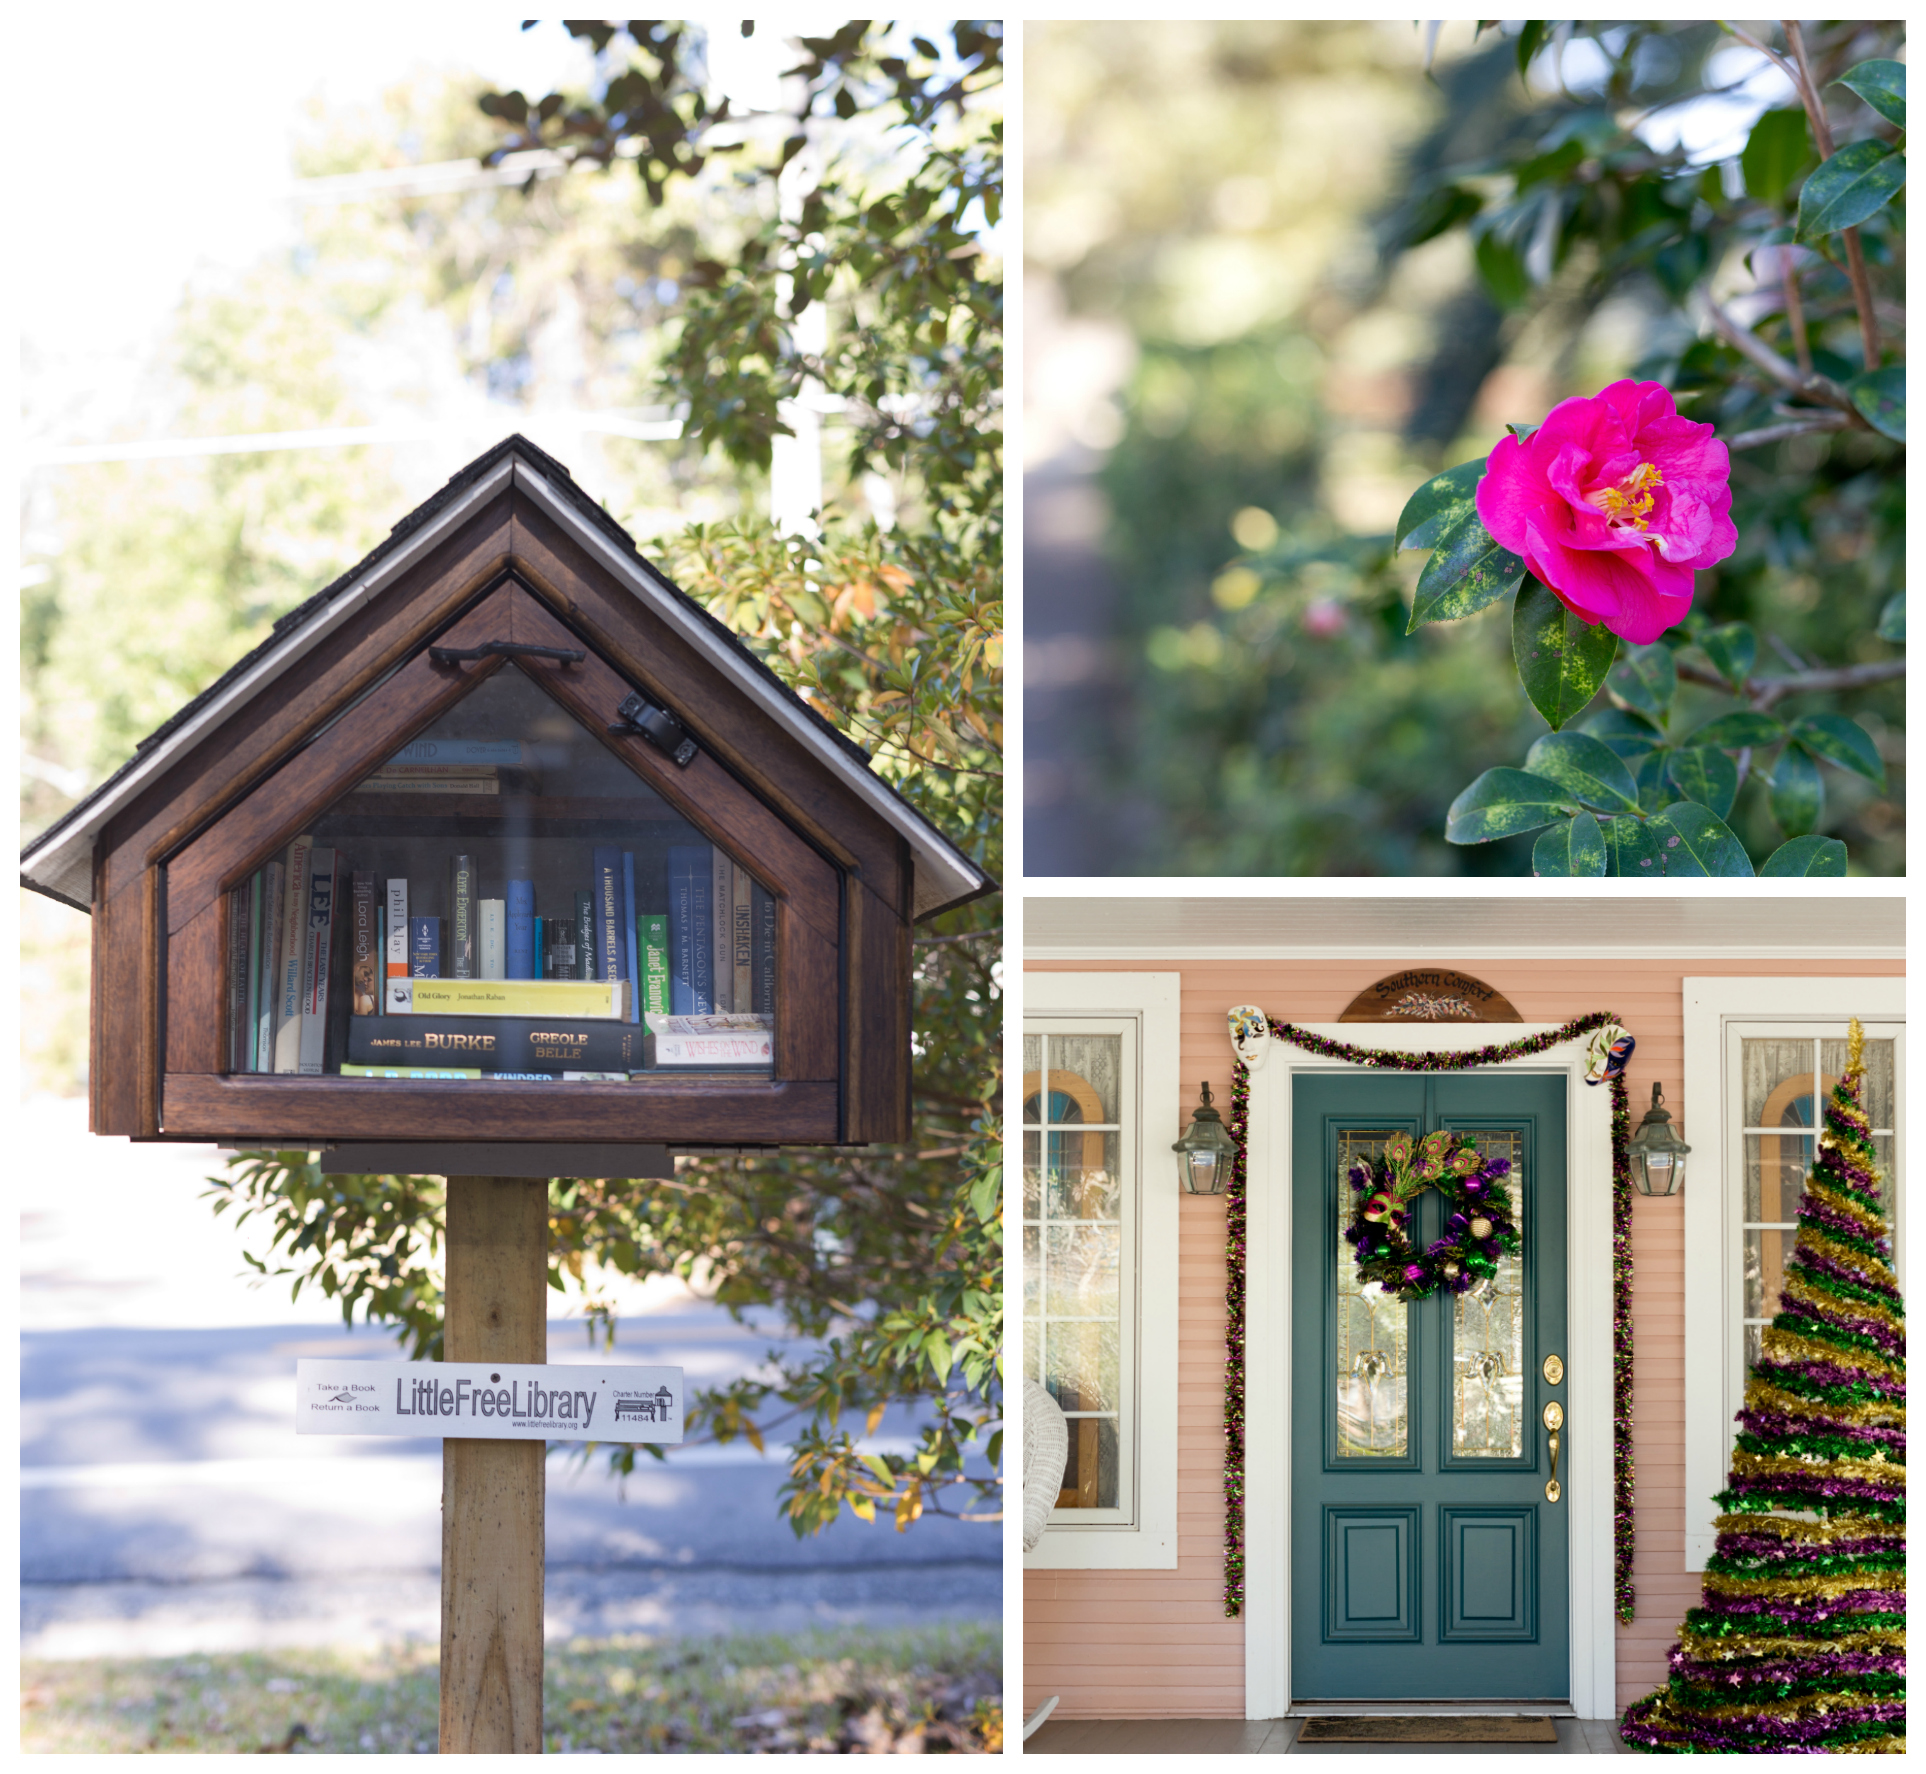 neighborhood details in Fairhope (flower, Little Library, Mardi Gras decor)